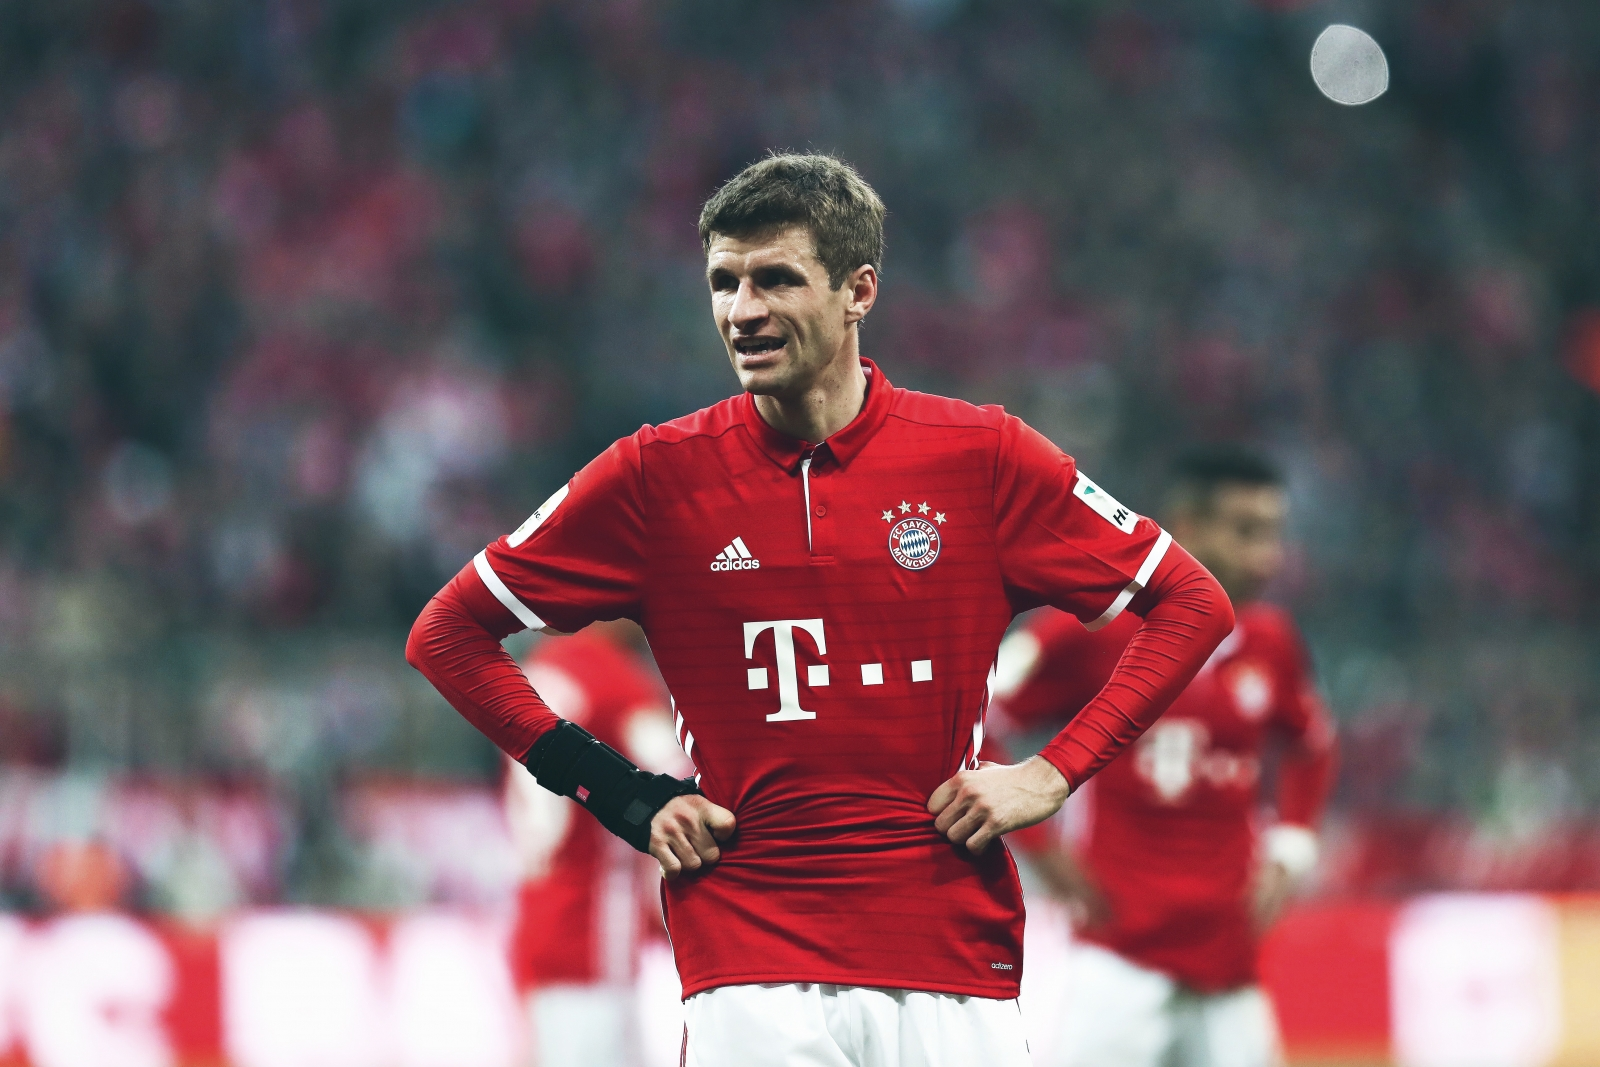 Thomas Müller: the first and possibly last Raumdeuter